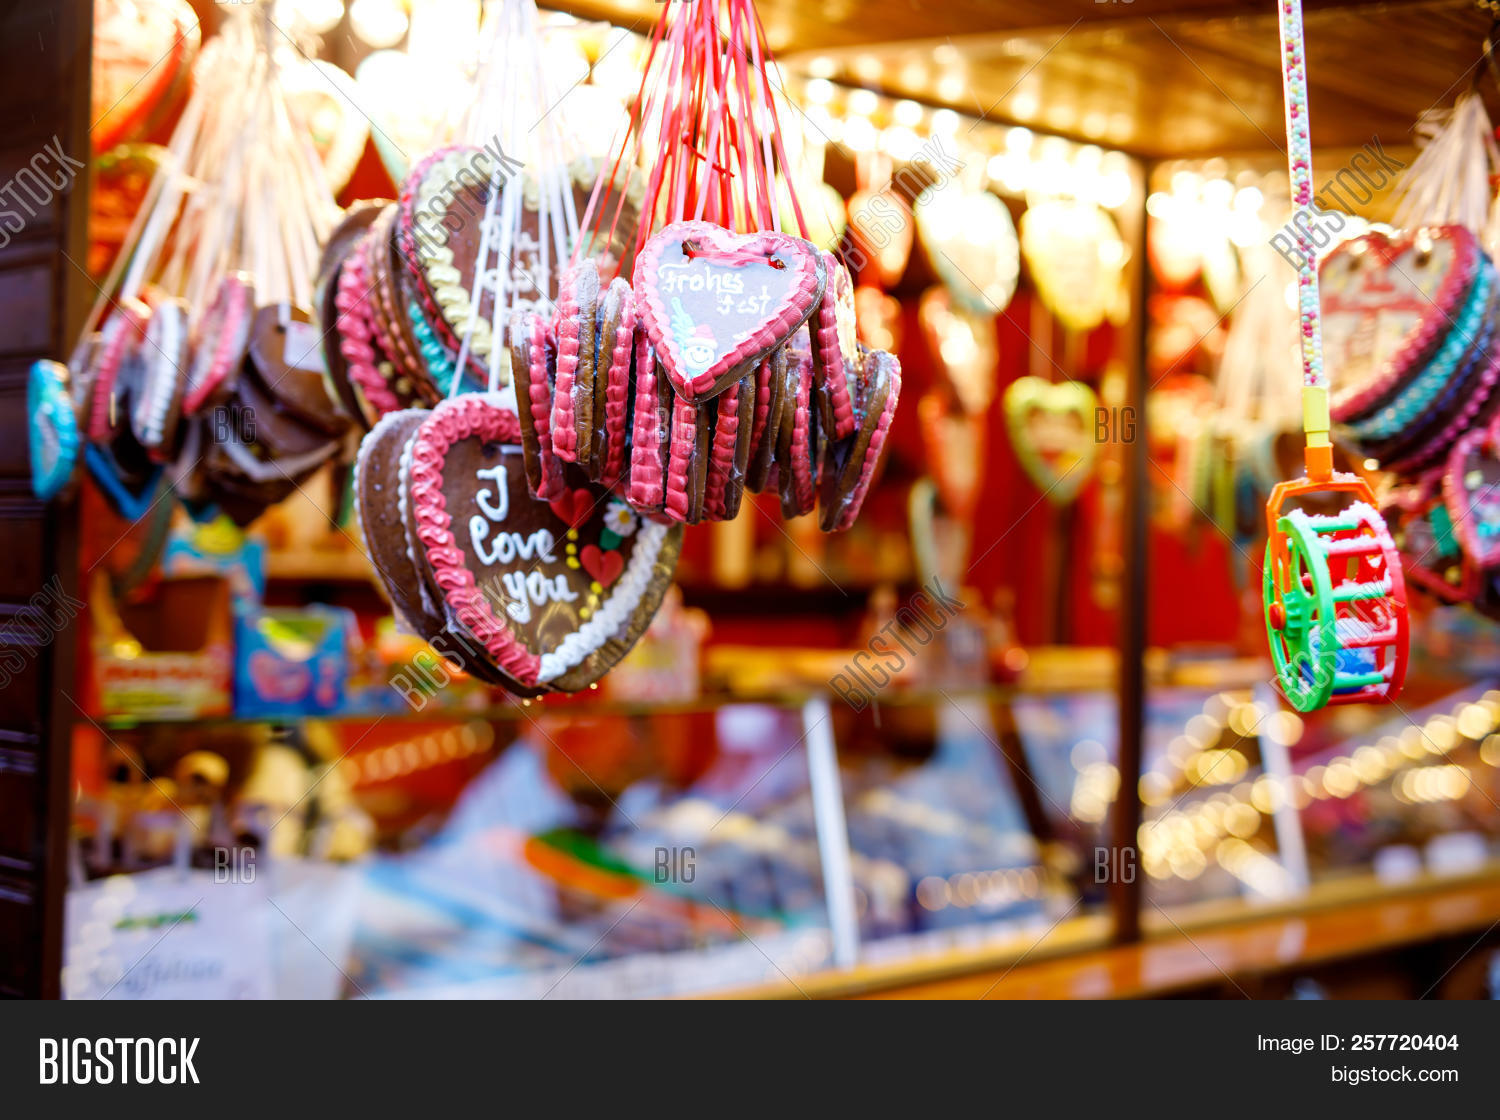 Gingerbread Hearts Image Photo Free Trial Bigstock